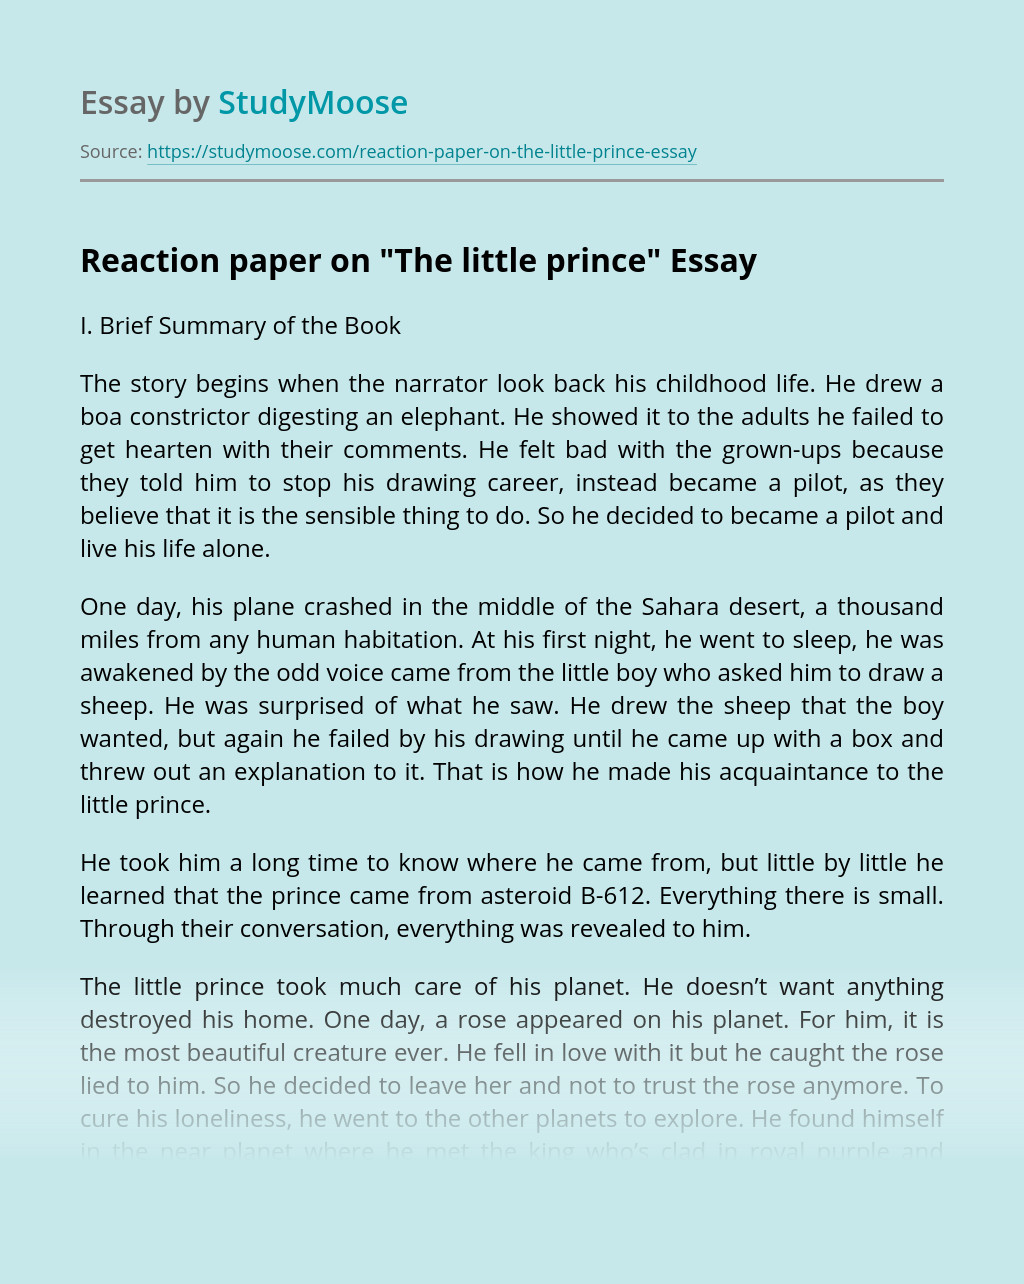 Reaction paper on